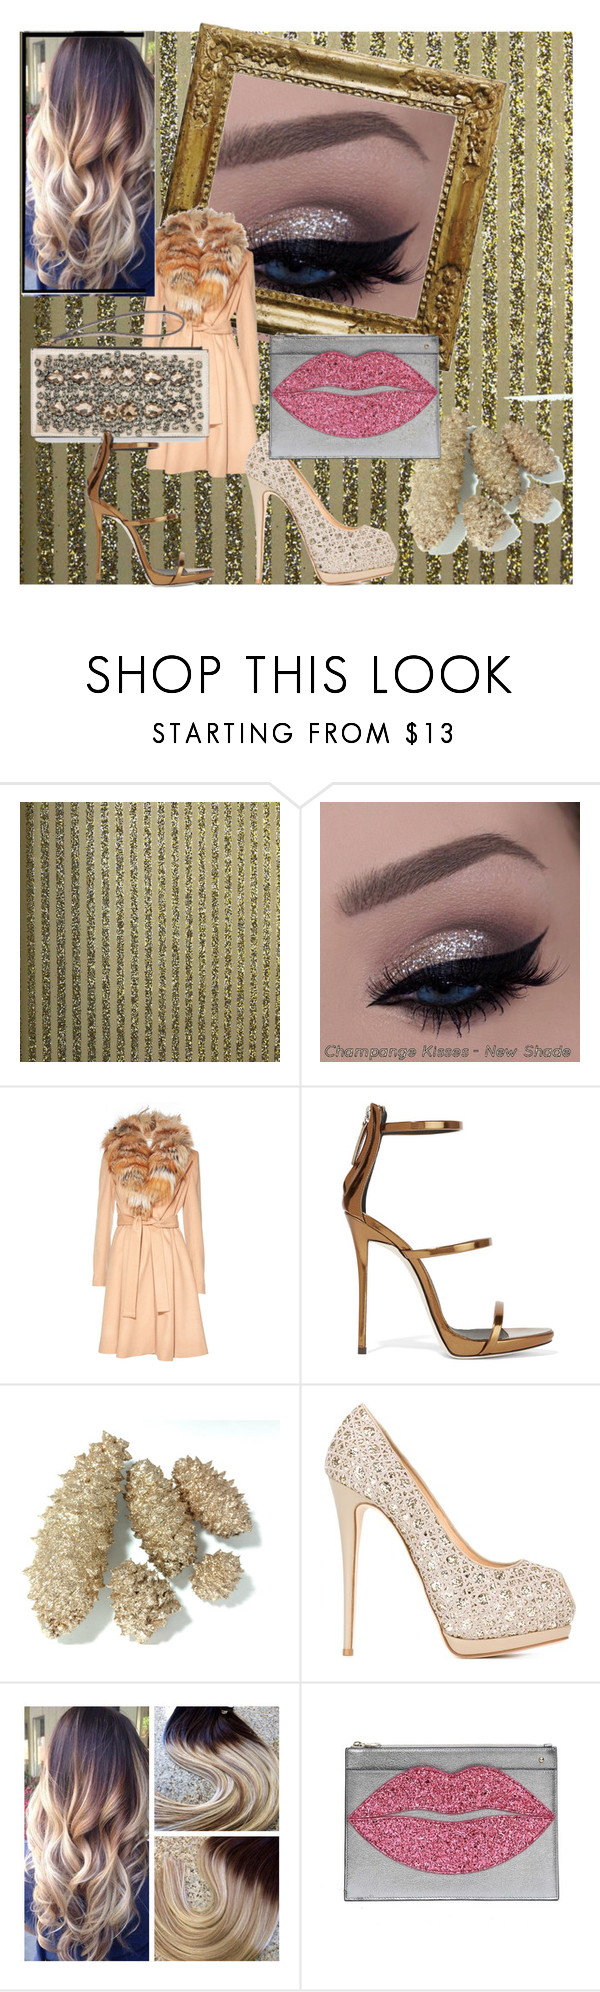 """Untitled #368"" by jesse-cc ❤ liked on Polyvore featuring beauty, Burke Decor, Alice + Olivia, Giuseppe Zanotti and Charlotte Olympia"